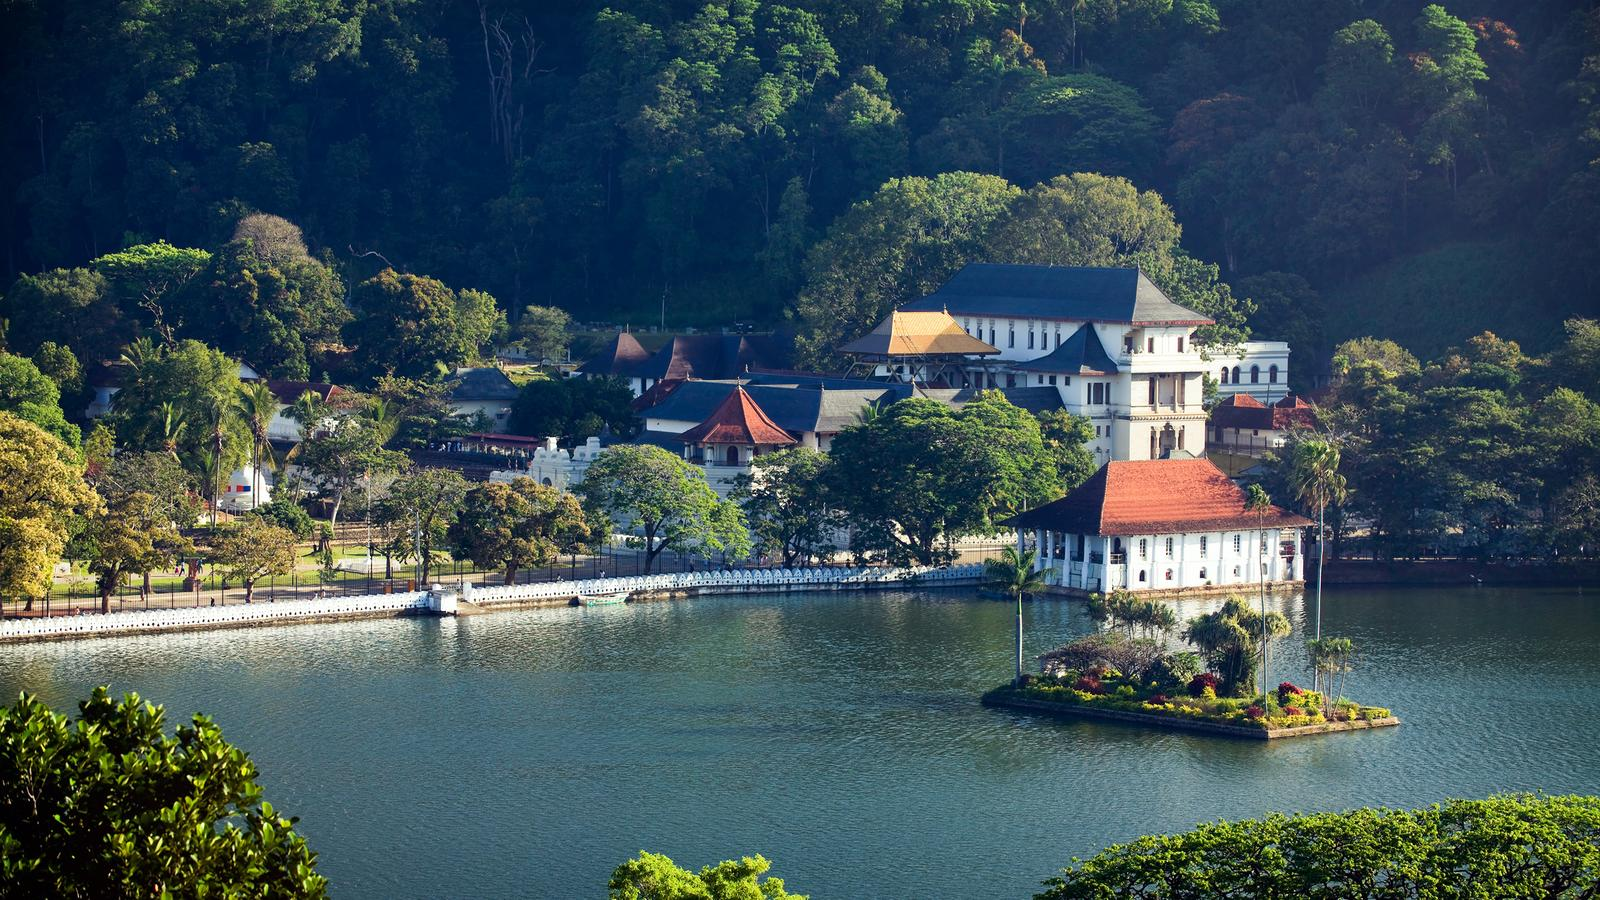 The Beautiful City of Kandy, Sri Lanka